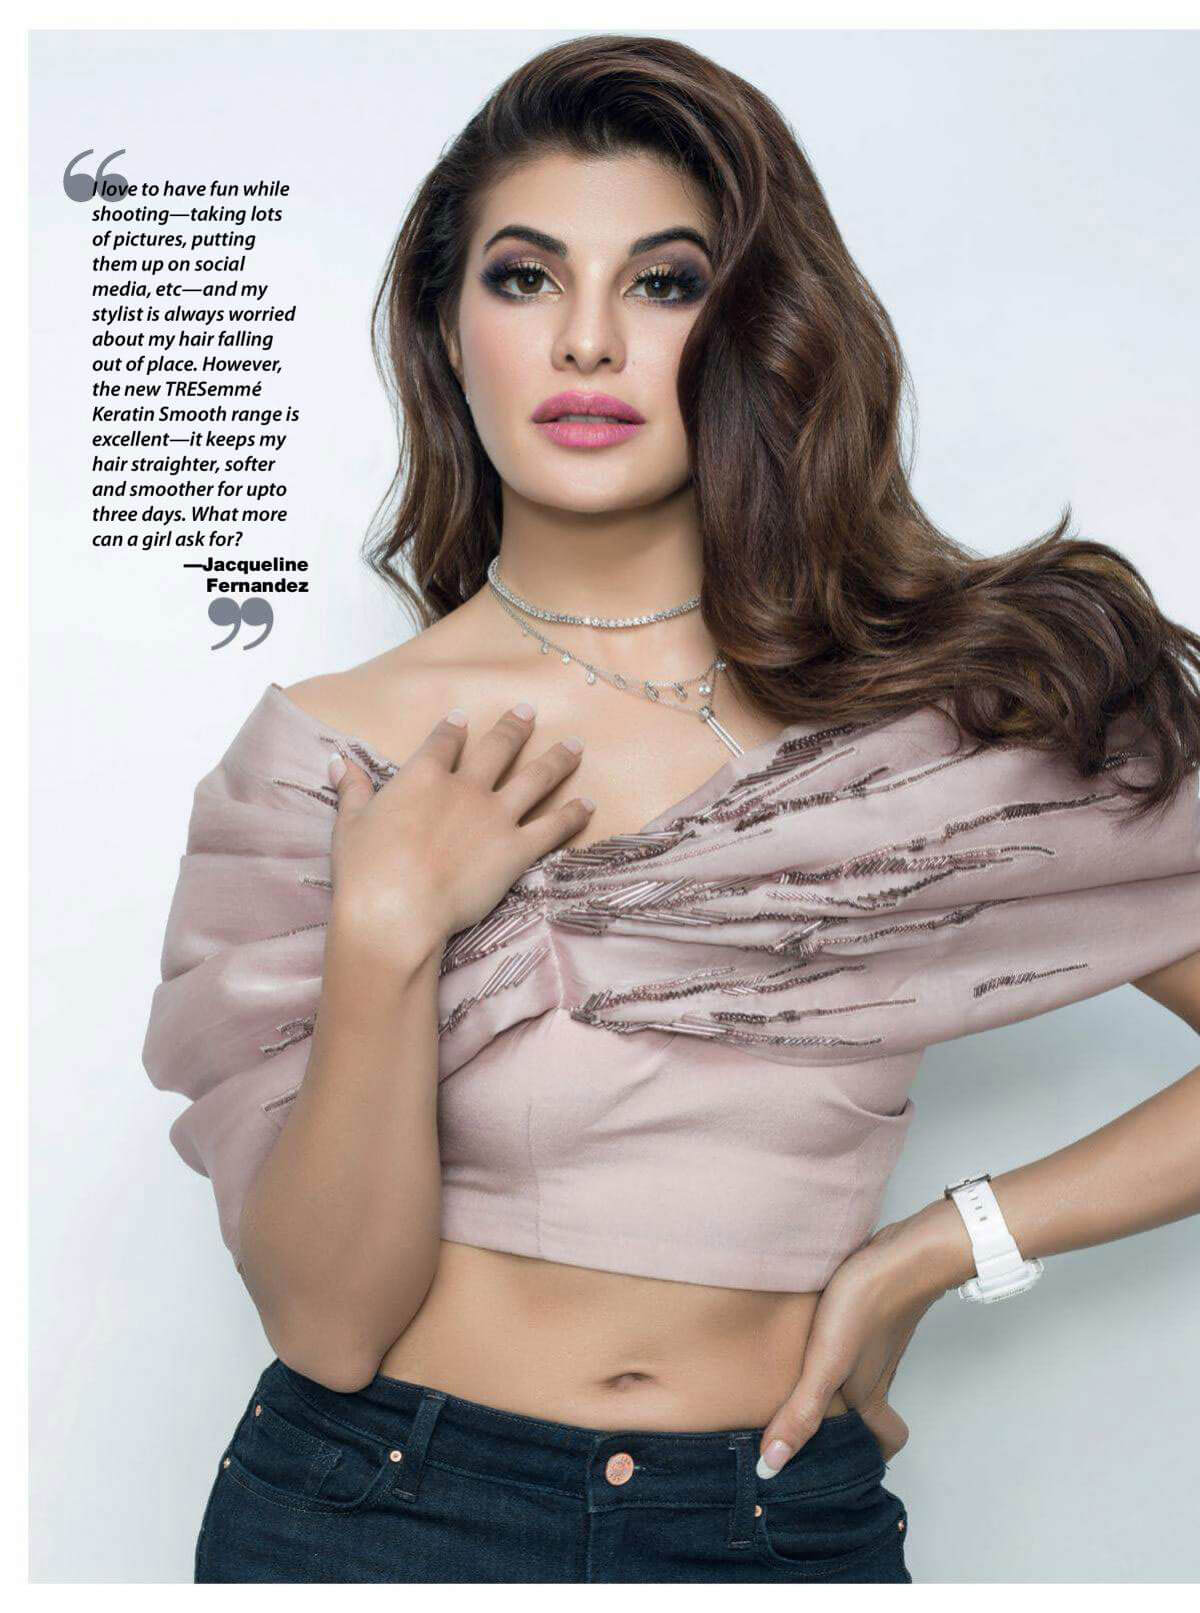 Jacqueline Fernandez in Cosmopolitan Magazine, India June 2018 Issue 1